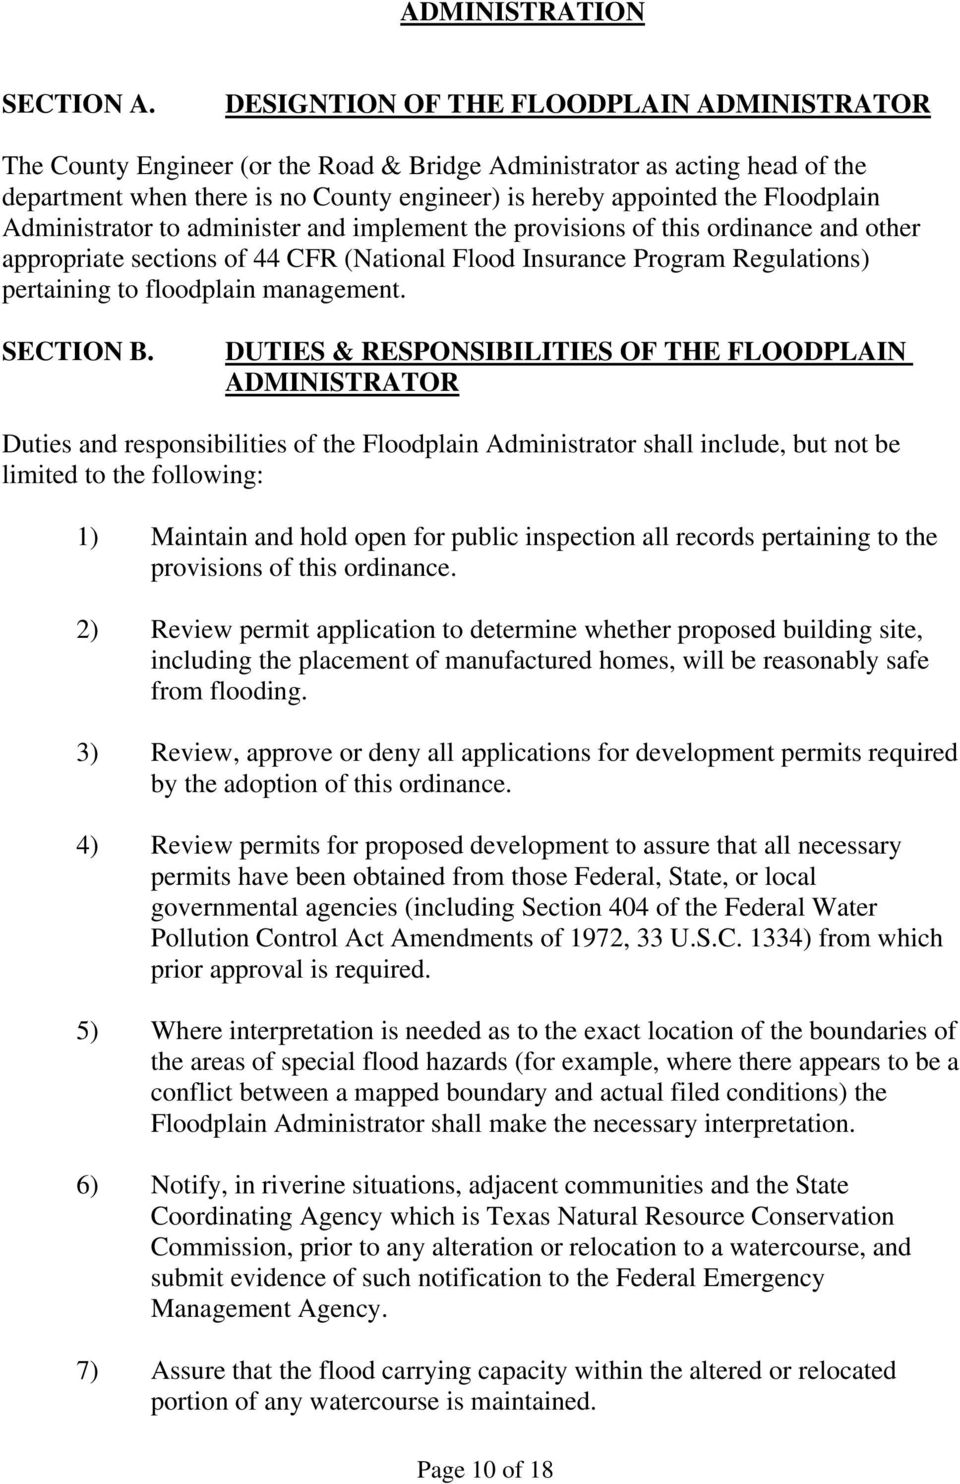 Floodplain Administrator to administer and implement the provisions of this ordinance and other appropriate sections of 44 CFR (National Flood Insurance Program Regulations) pertaining to floodplain